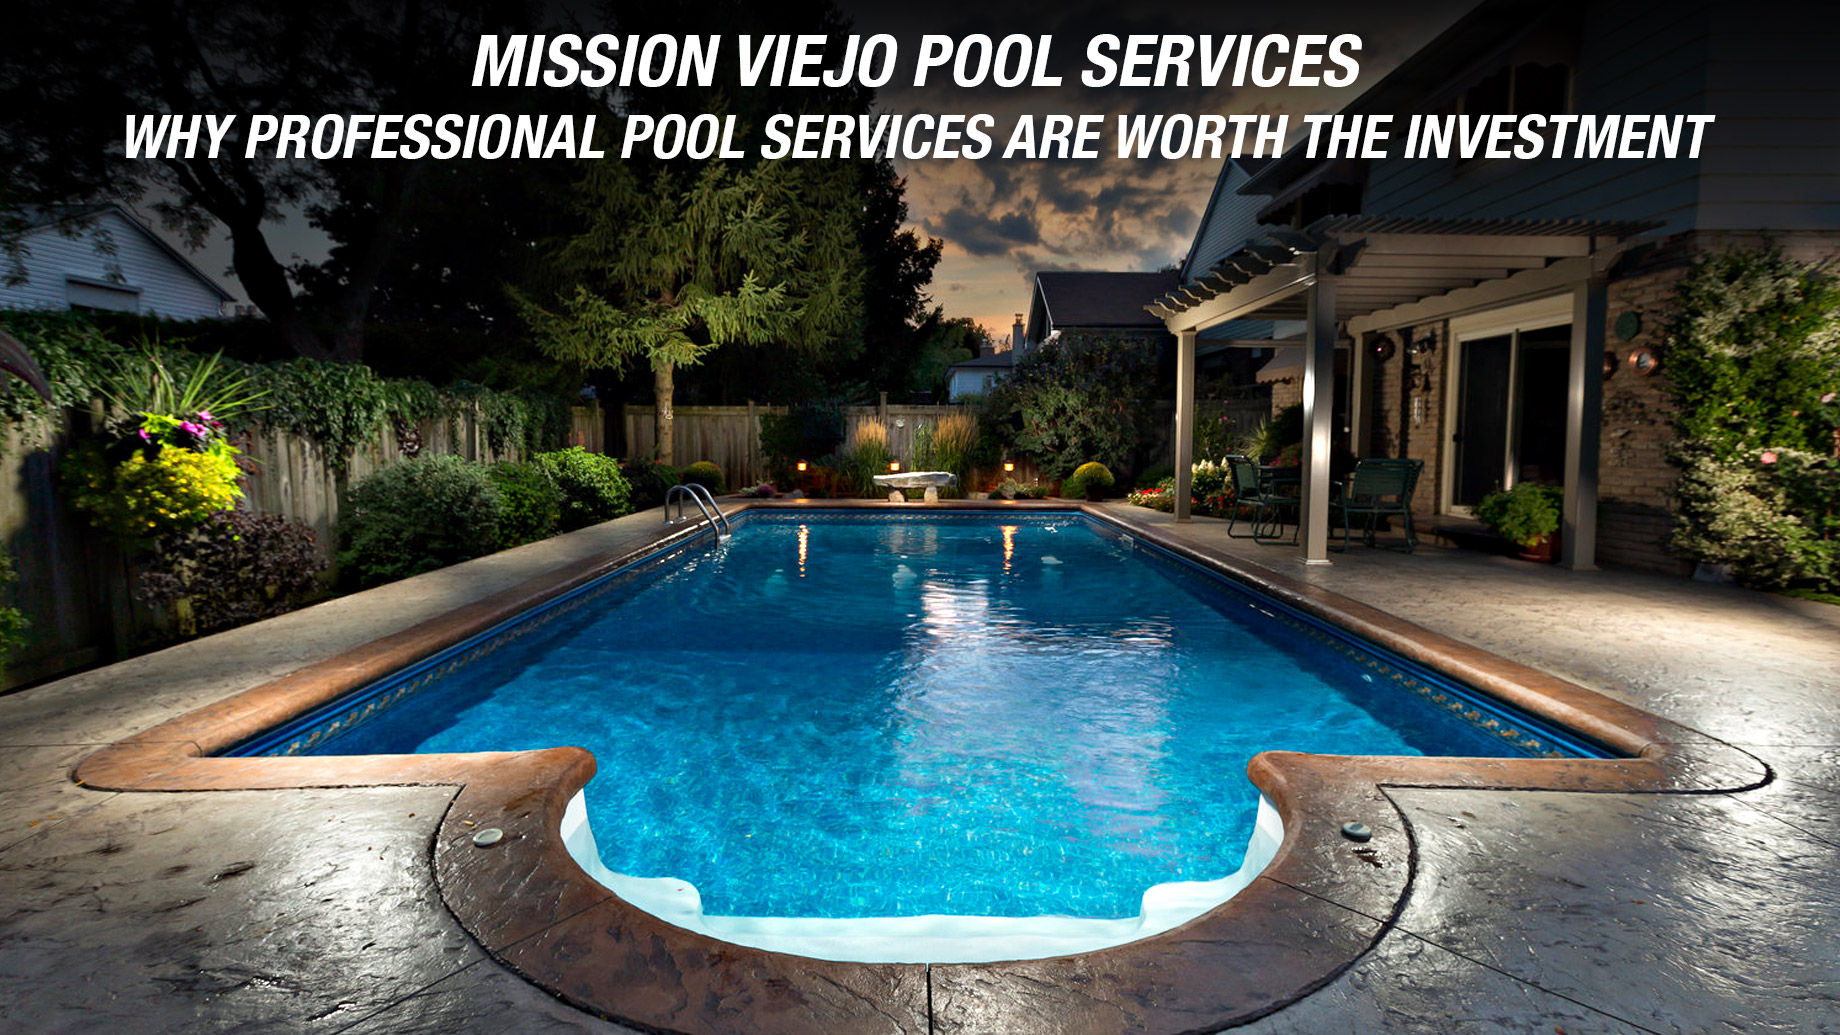 Mission Viejo Pool Services - Why Professional Pool Services Are Worth the Investment